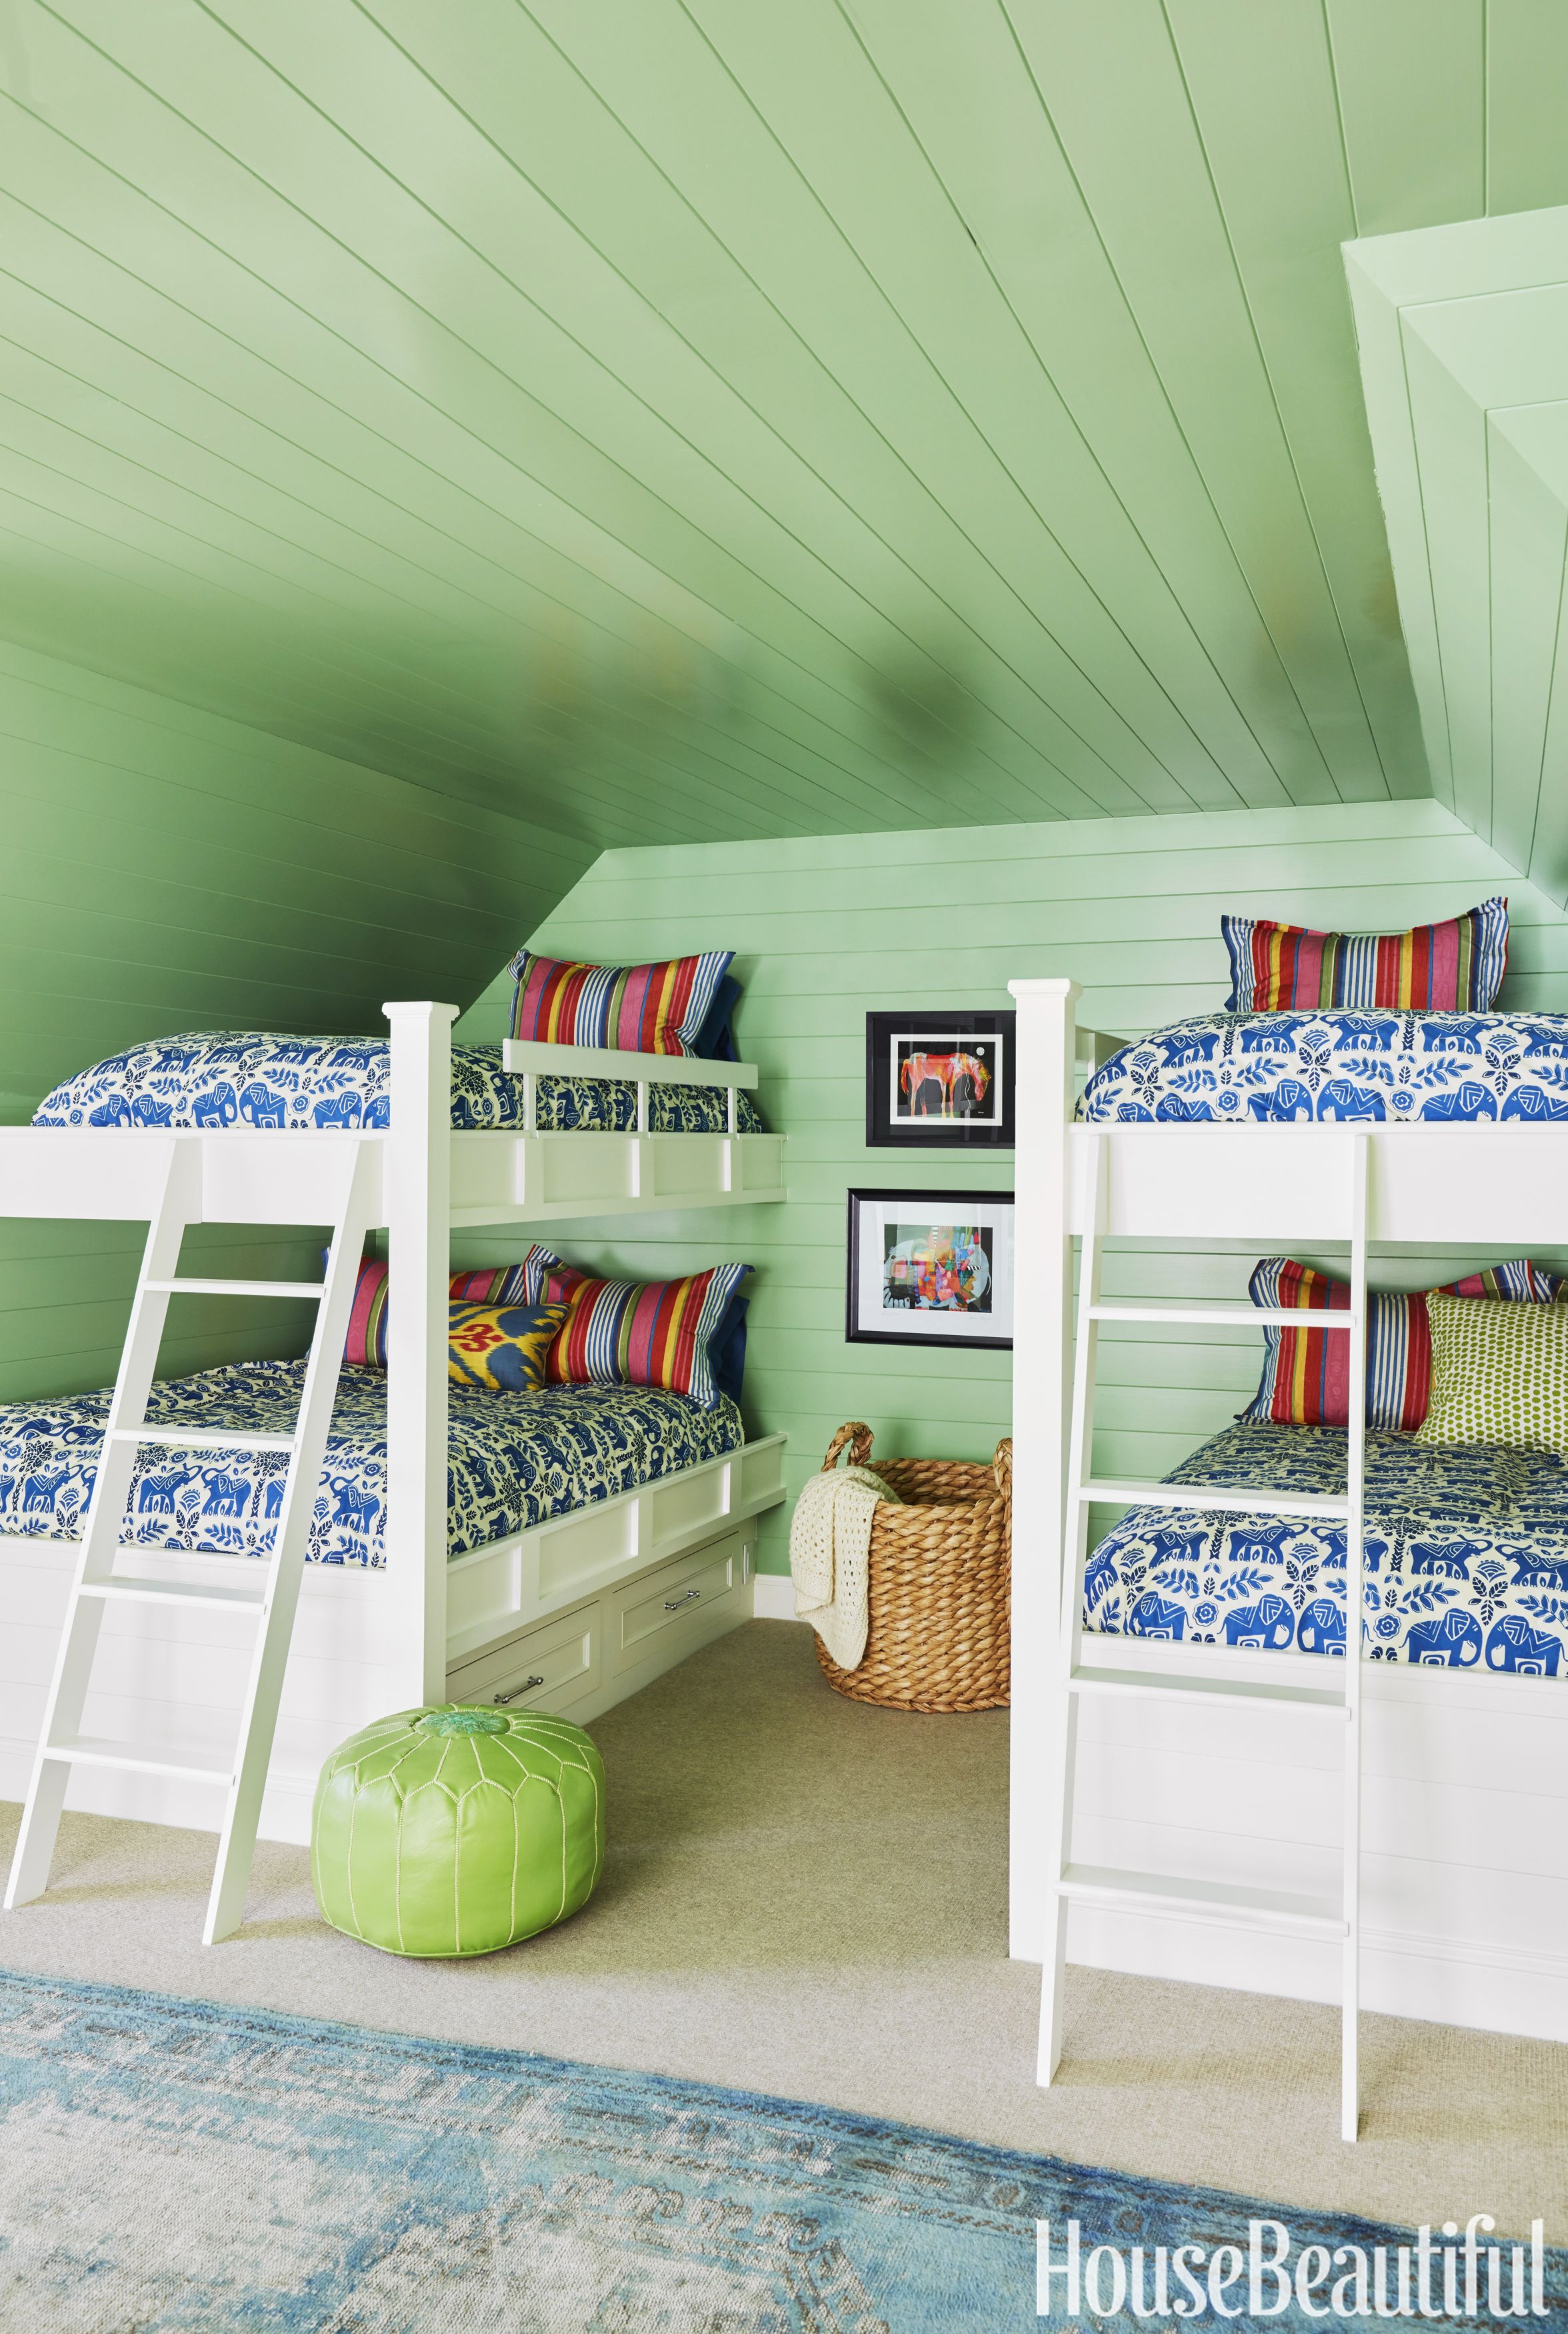 10 Sage Green Paint Colors That Bring Peace And Calm   Best Sage Green  Paint Colors